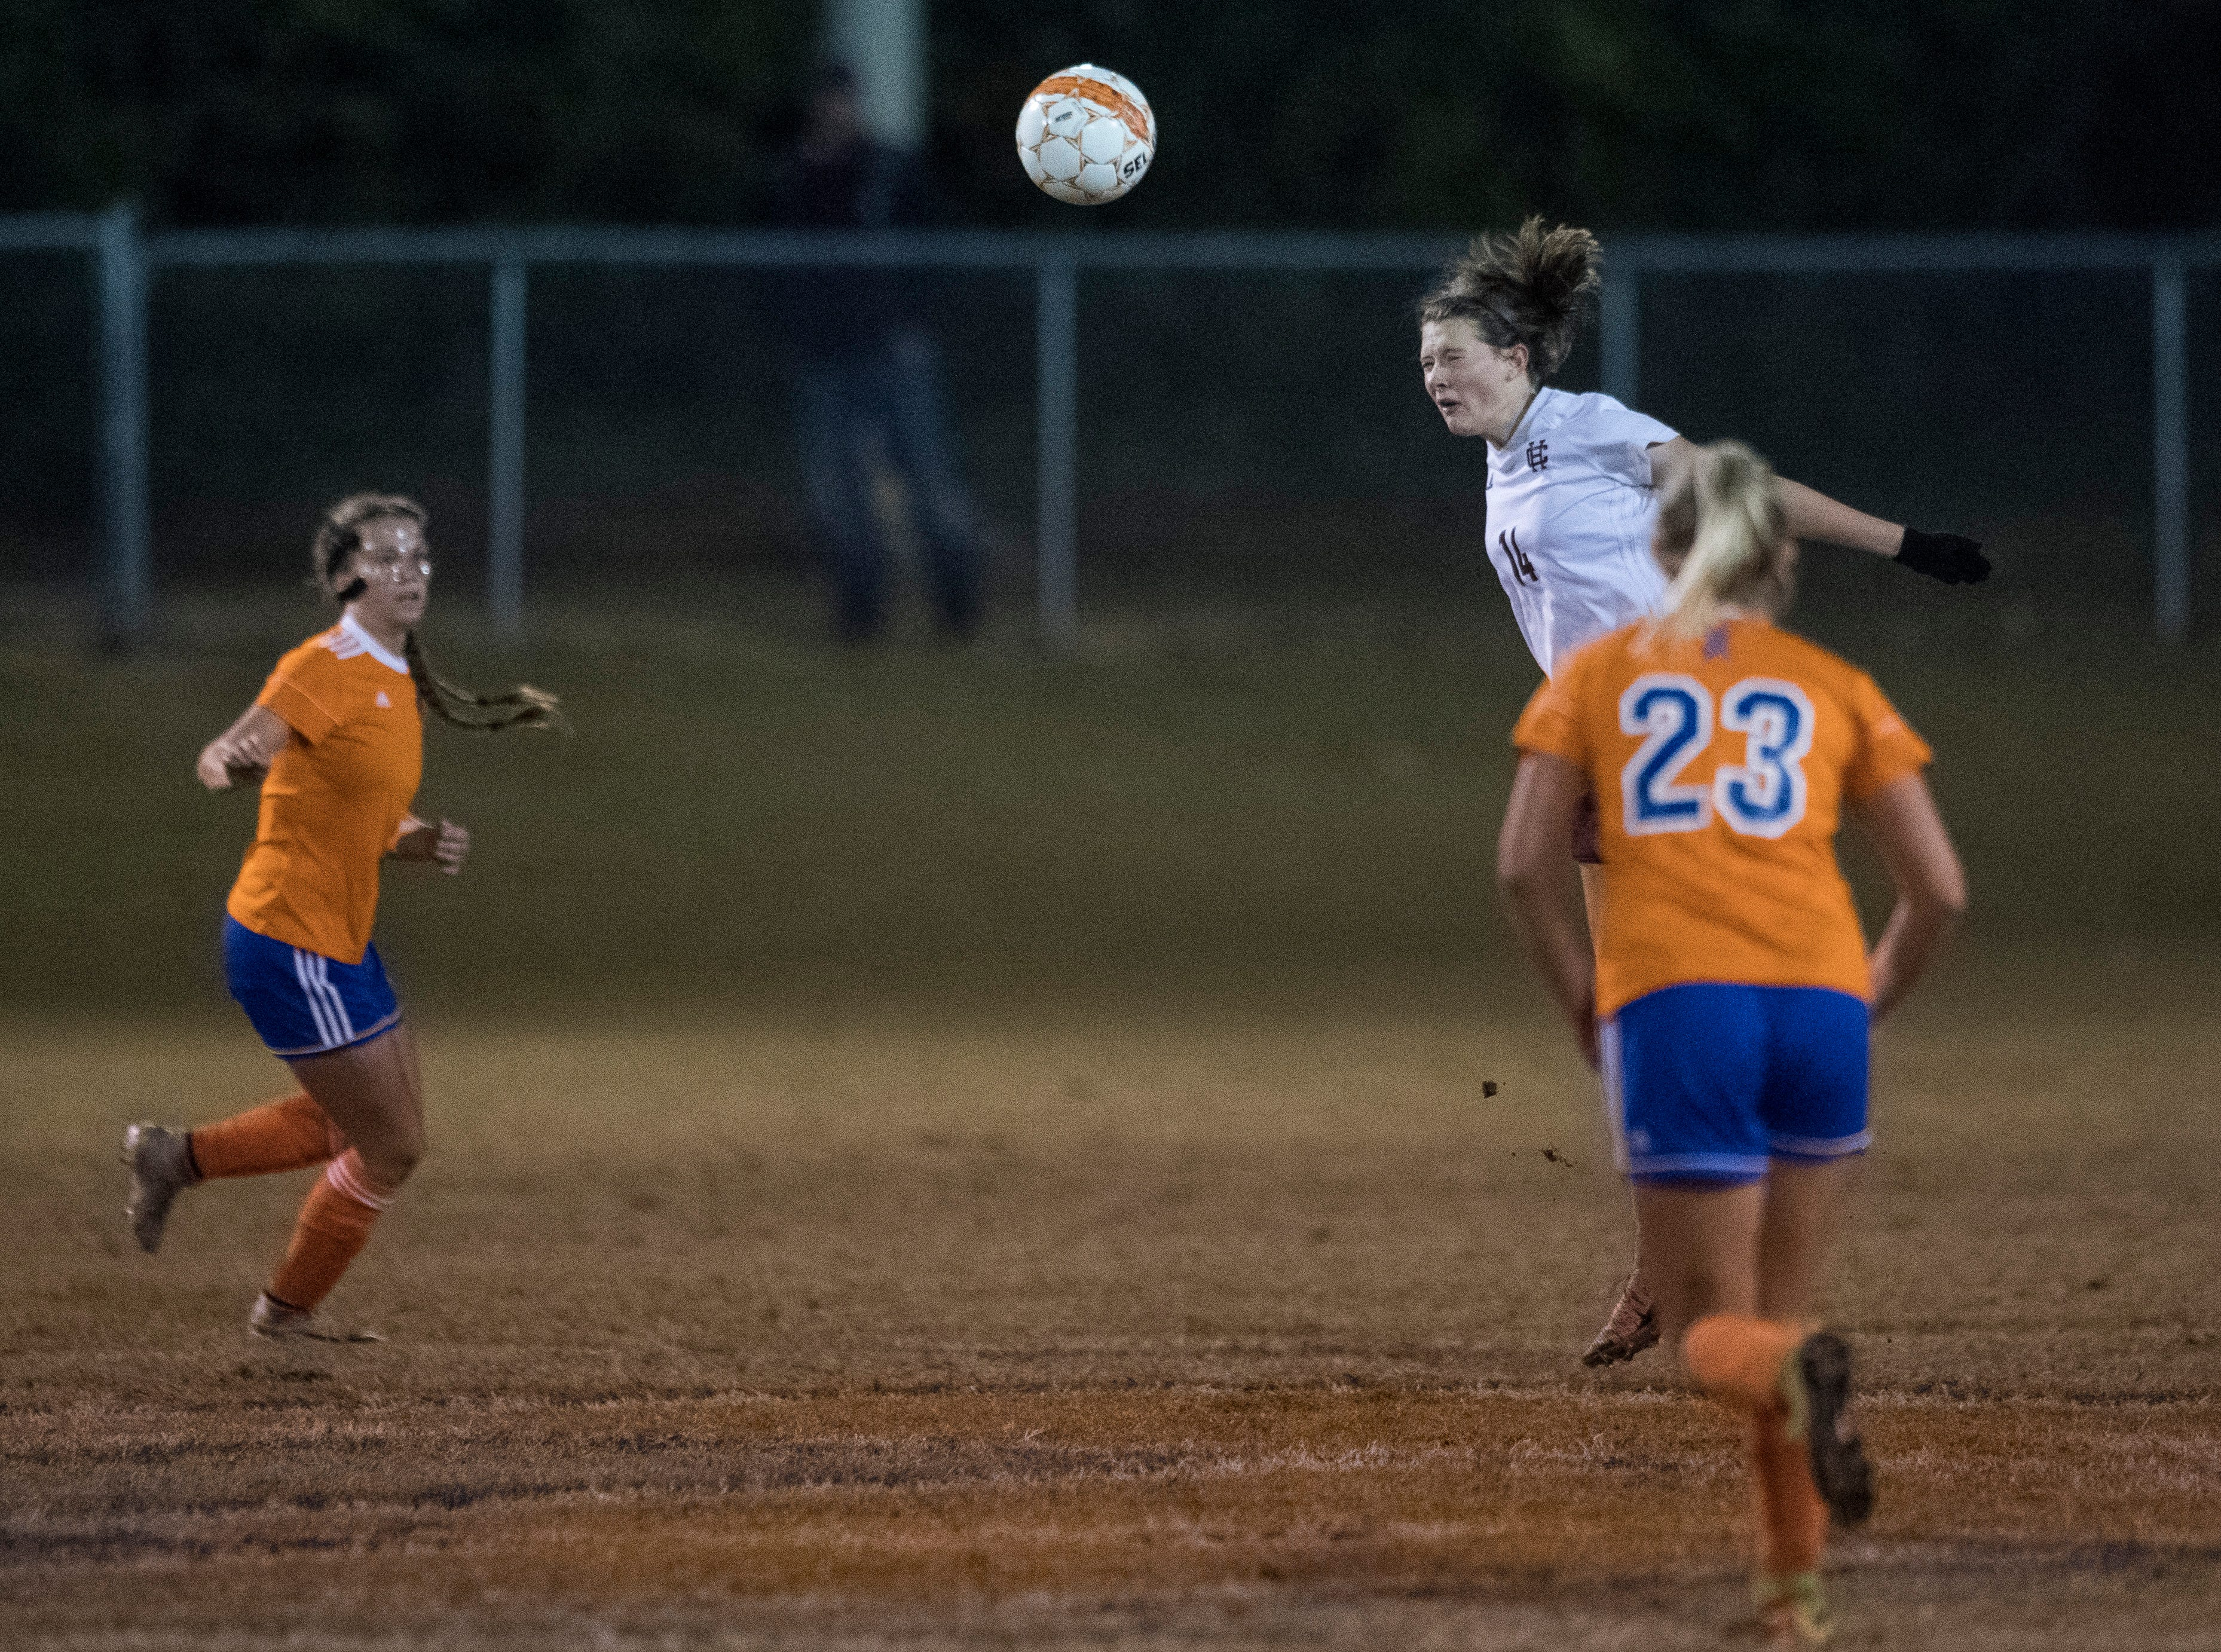 Henderson's Kayla West (14) heads the ball during the first round of the KHSAA state tournament at Marshall County High School Monday, Oct. 23, 2018.